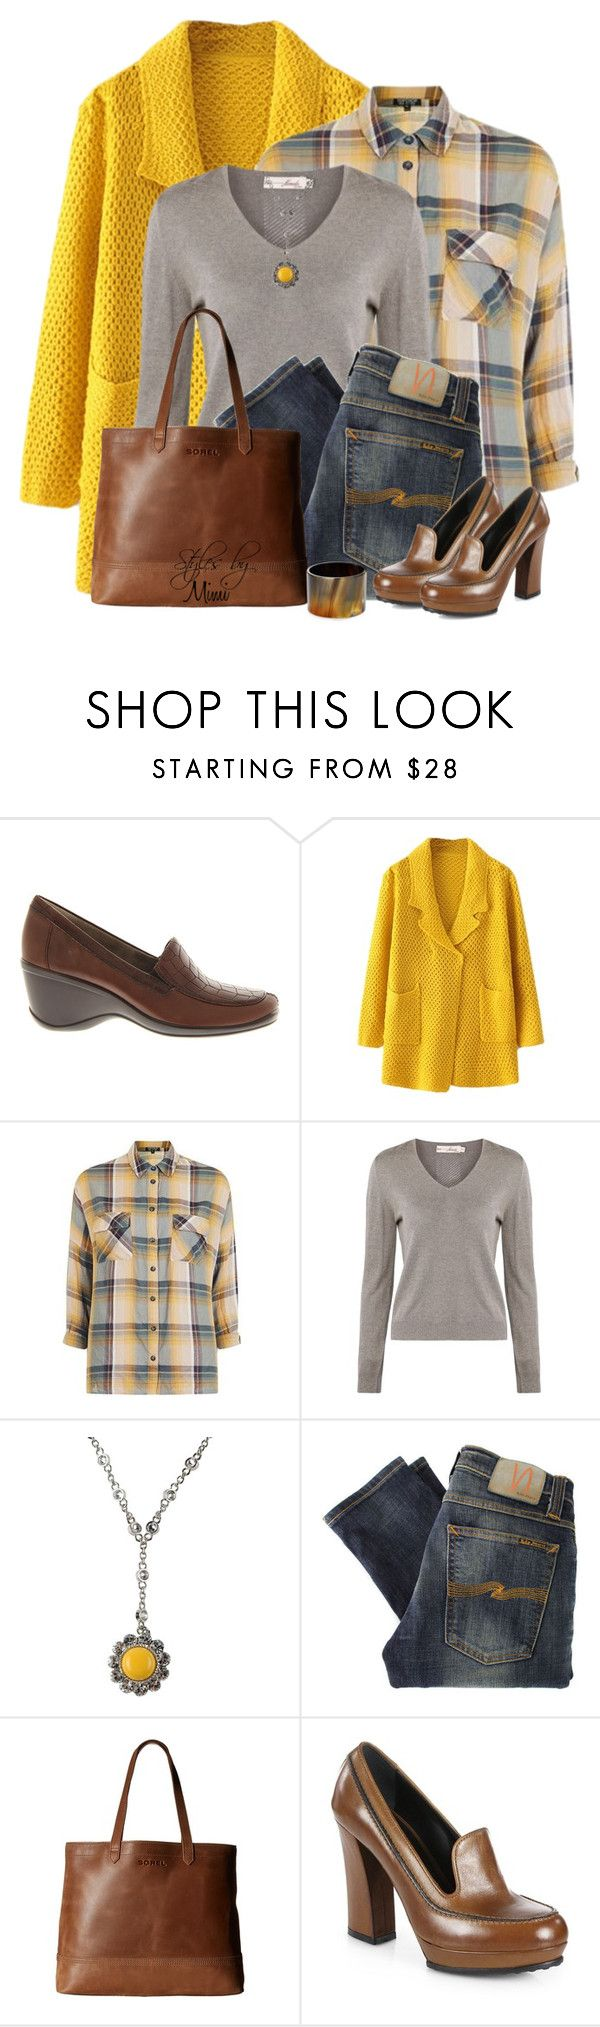 """""""Sunny Sweater Coat (11.8.16)"""" by stylesbymimi ❤ liked on Polyvore featuring Naturalizer, Topshop, Miu Miu, Nudie Jeans Co., SOREL, Tod's and Robert Lee Morris"""